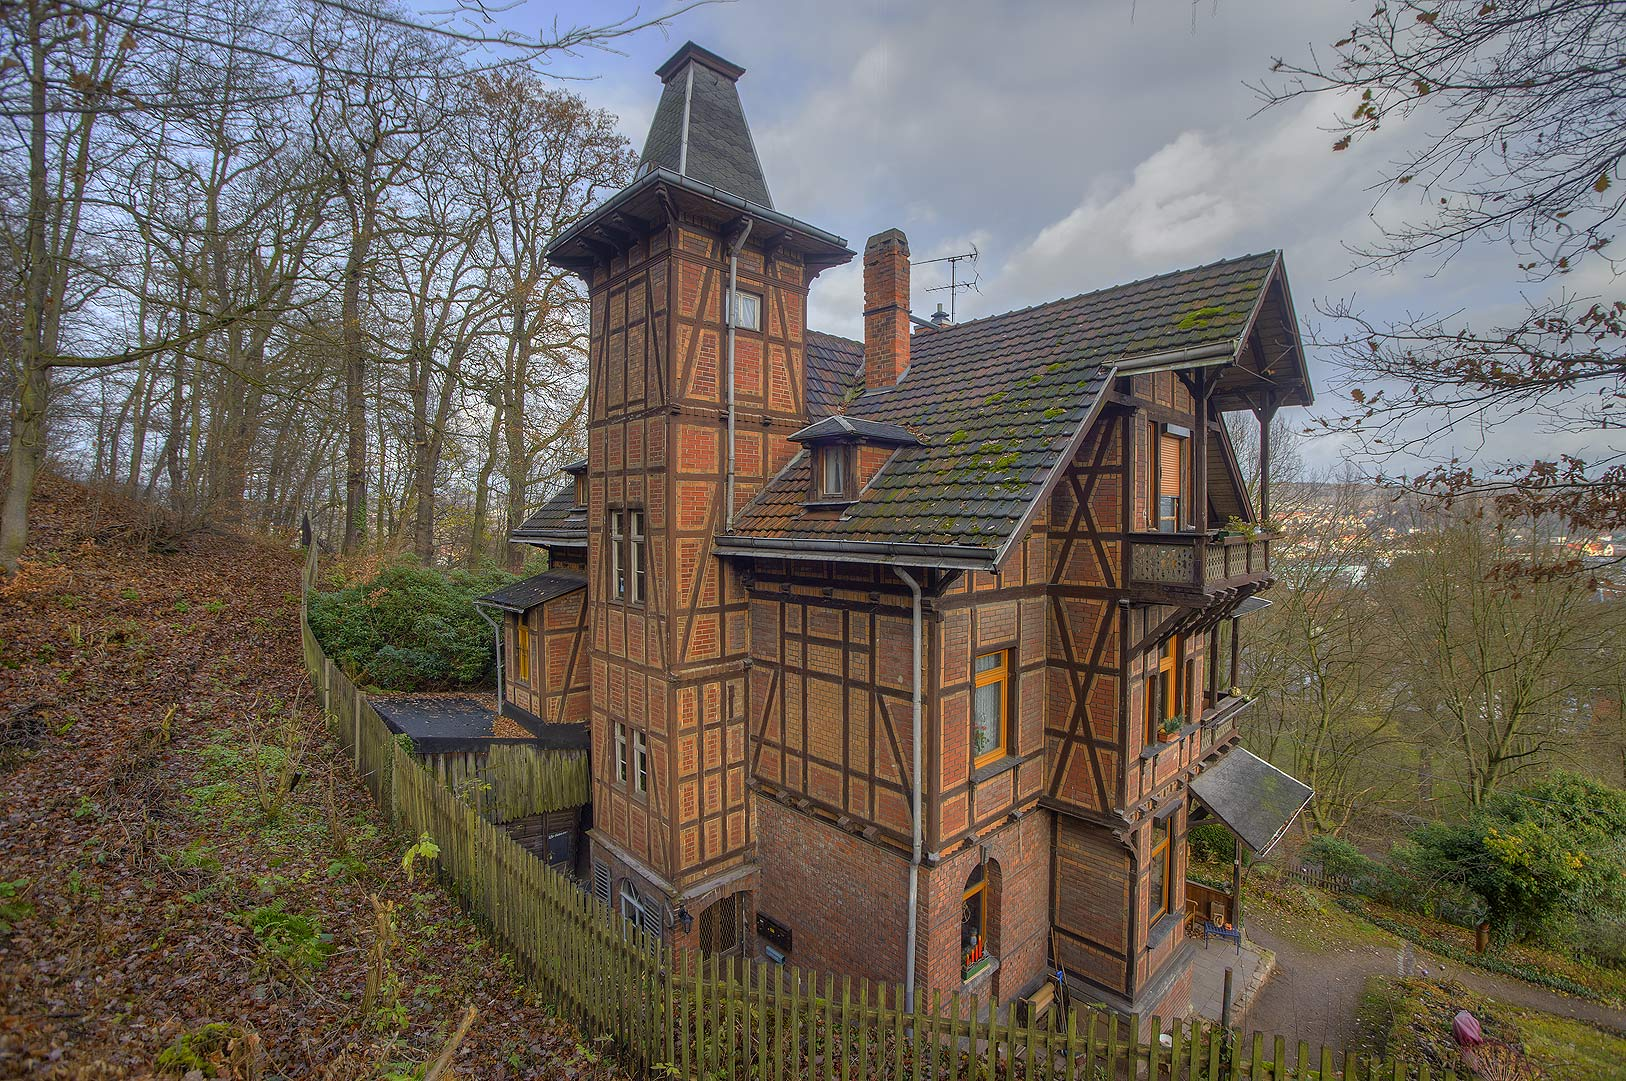 House on a slope of a hill. Eisenach, Germany